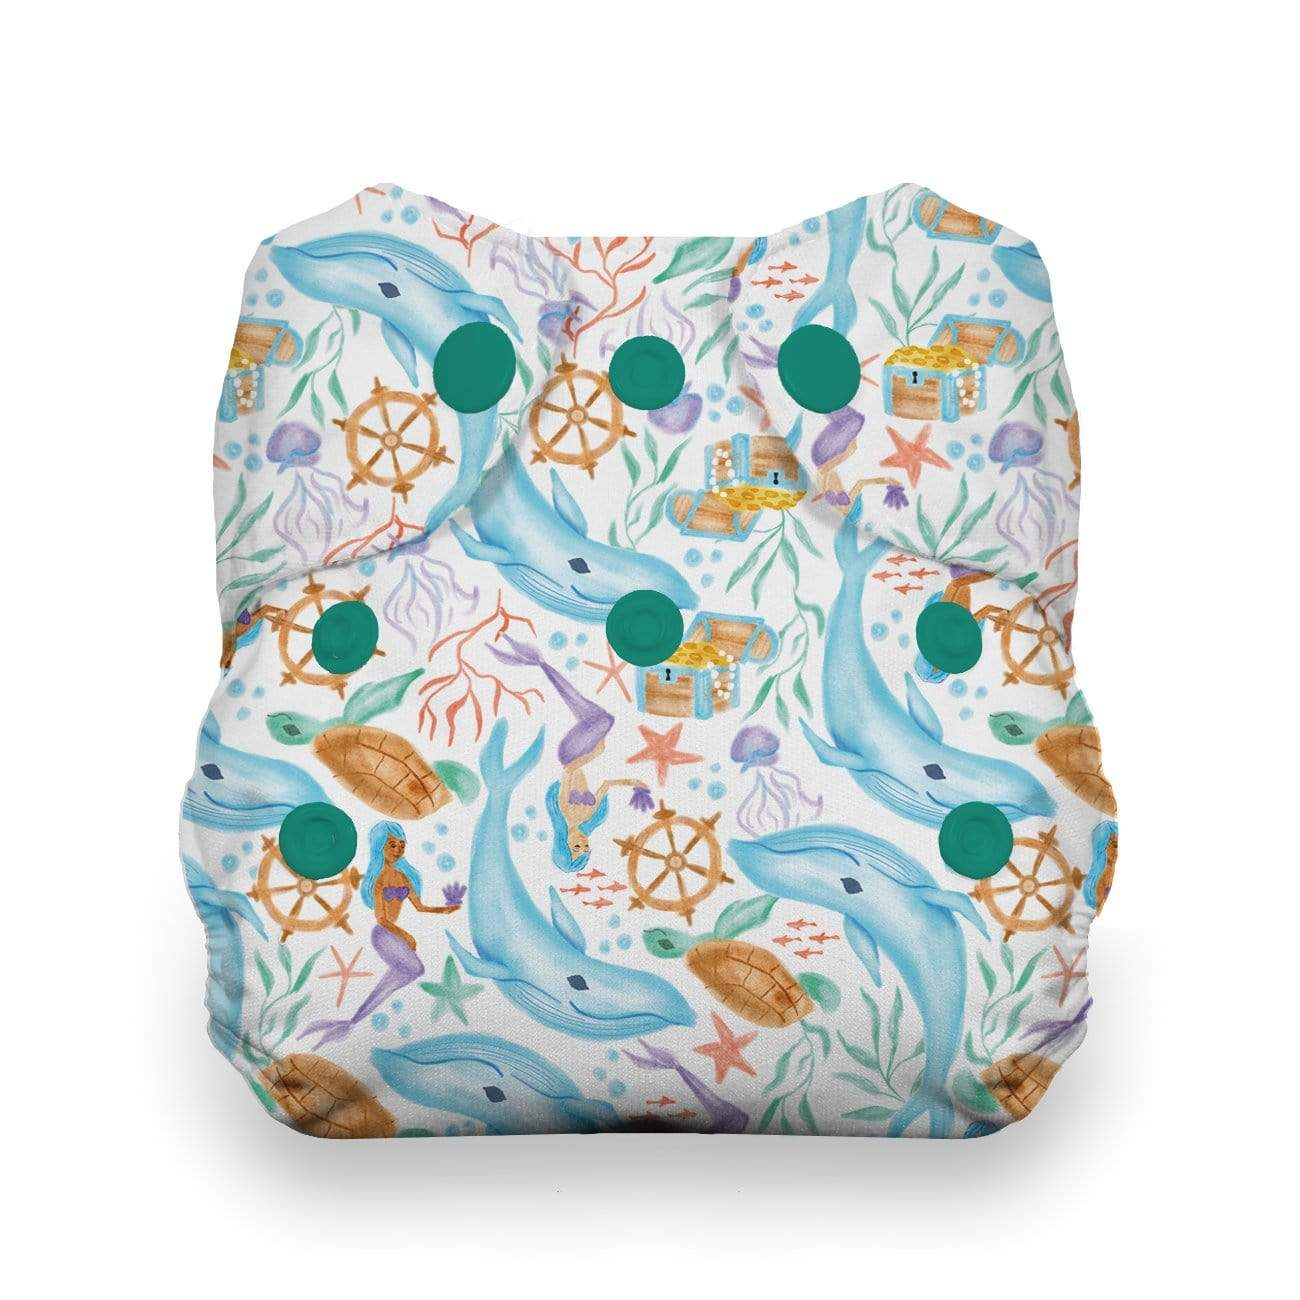 Thirsties Newborn Snap All In One Diaper - Mermaid Lagoon